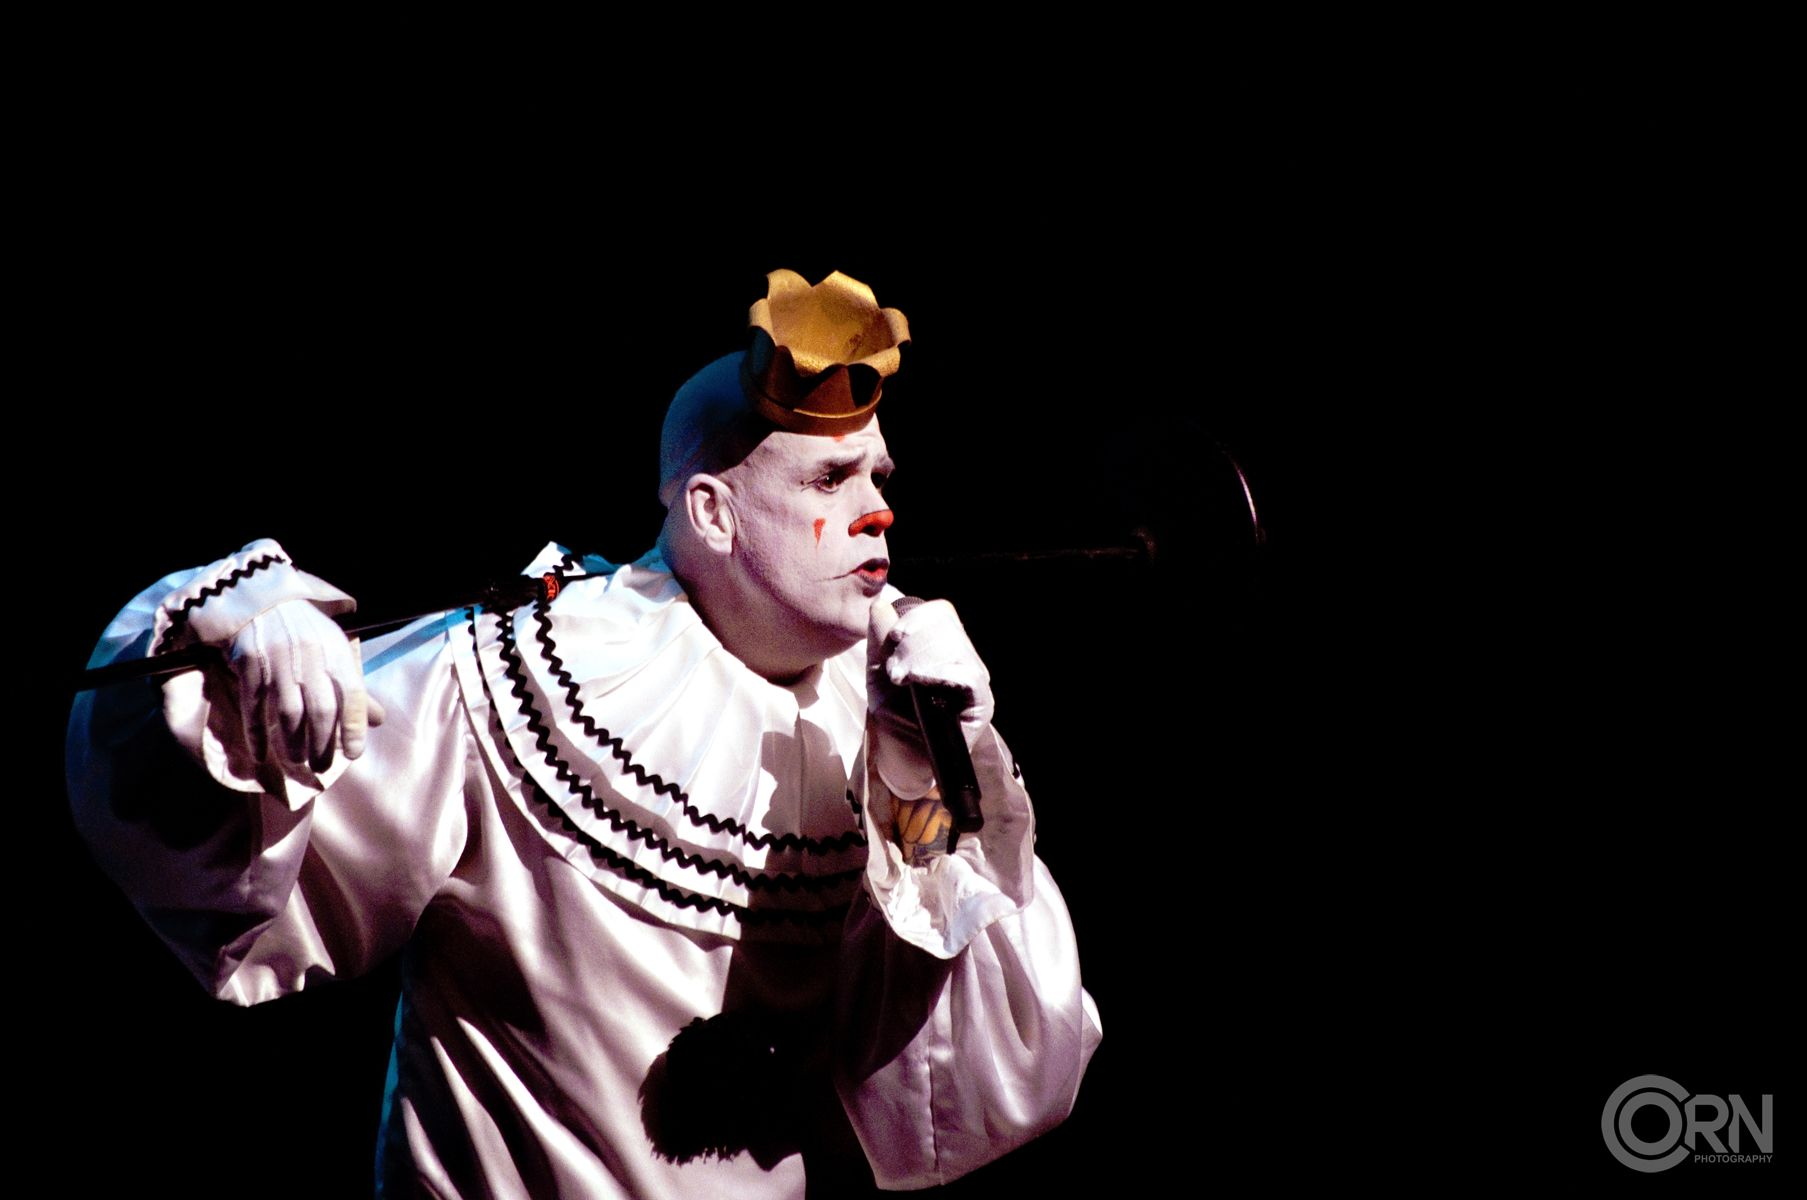 Puddles Pity Party at the Southern Theater in Columbus, OH